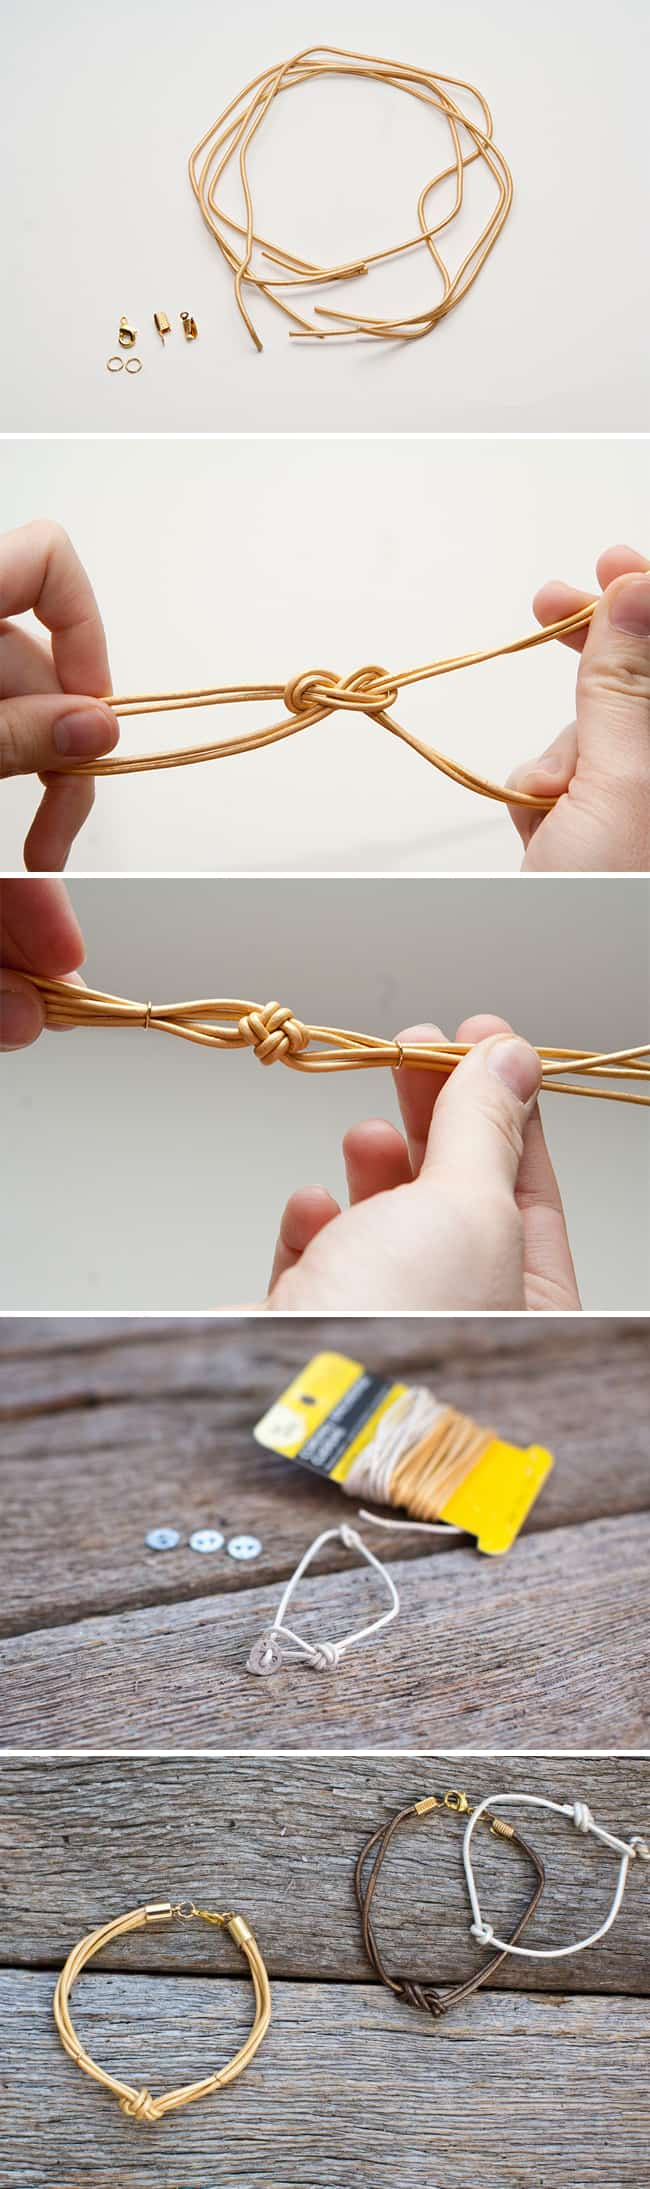 DIY Knotted Leather Bracelets | HelloGlow.co